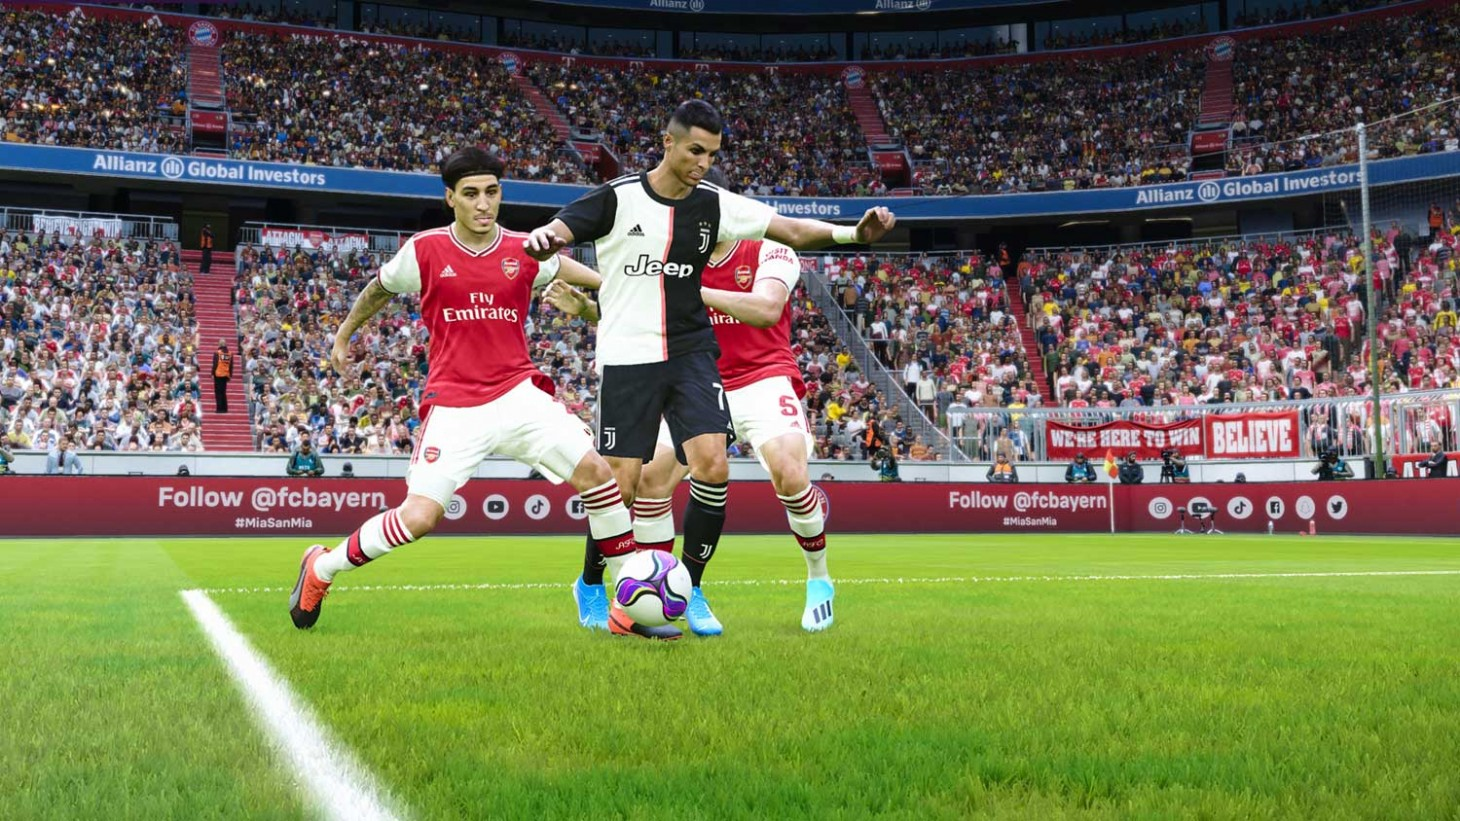 Pes 2020 Review.Efootball Pes 2020 Review Fine Margins Game Informer